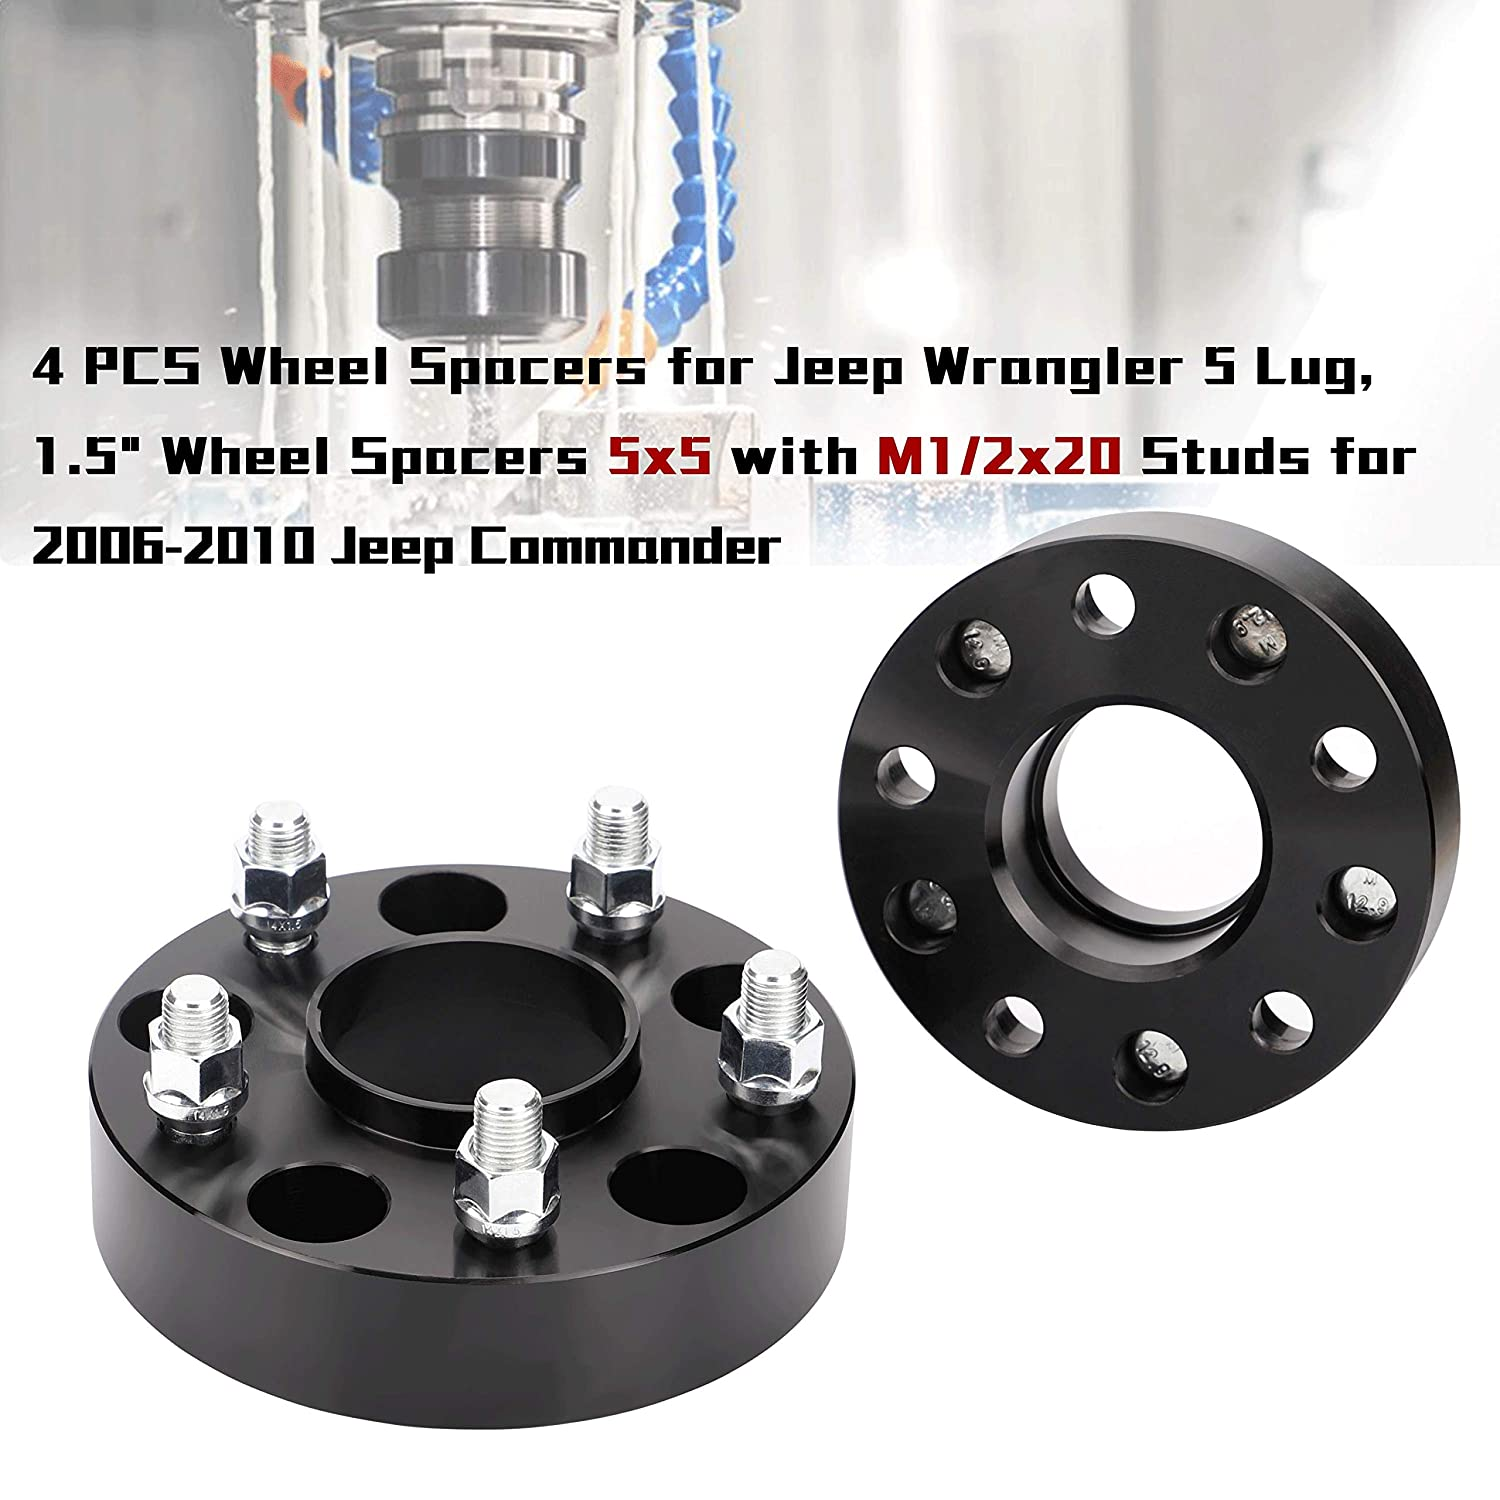 4pcs 1.5 inch hubcentric 5x5 Wheel Spacers with 1//2-20 Studs for 2007-2018 Jeep Wrangler JK 1999-2010 Grand Cherokee WJ WK 2006-2010 Commander XK